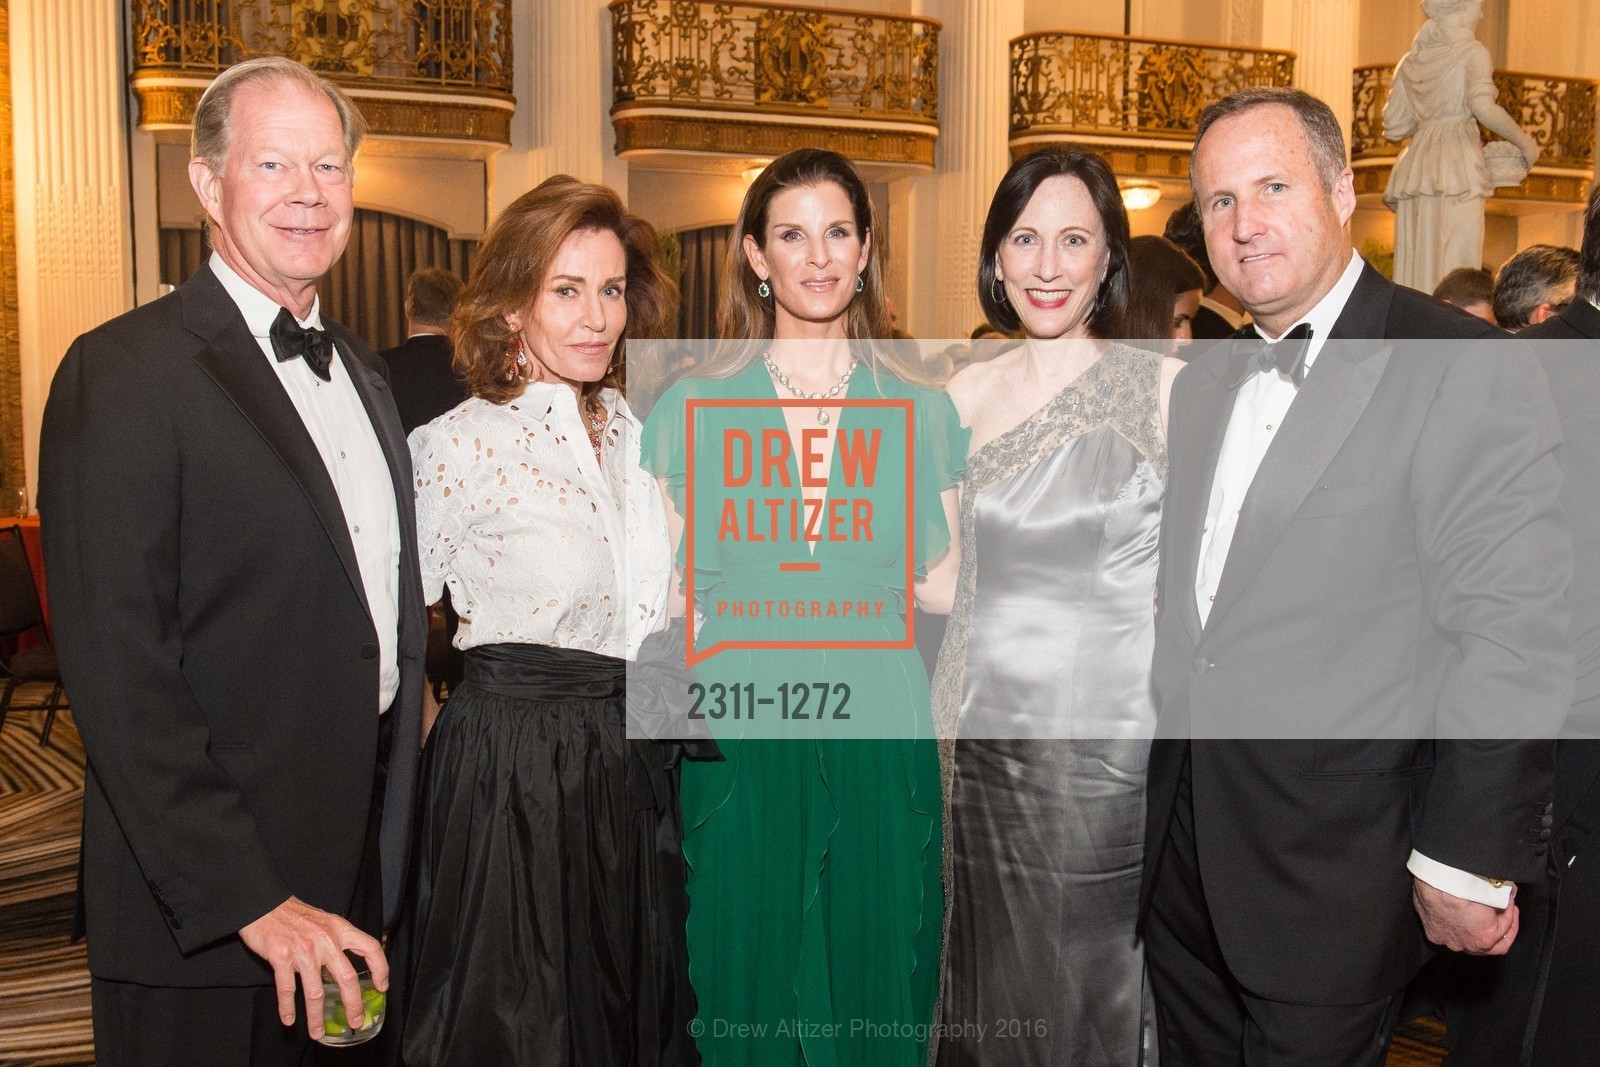 George Jewett, Brenda Jewett, Leslie Podell, Michelle Meany, Chris Meany, Photo #2311-1272